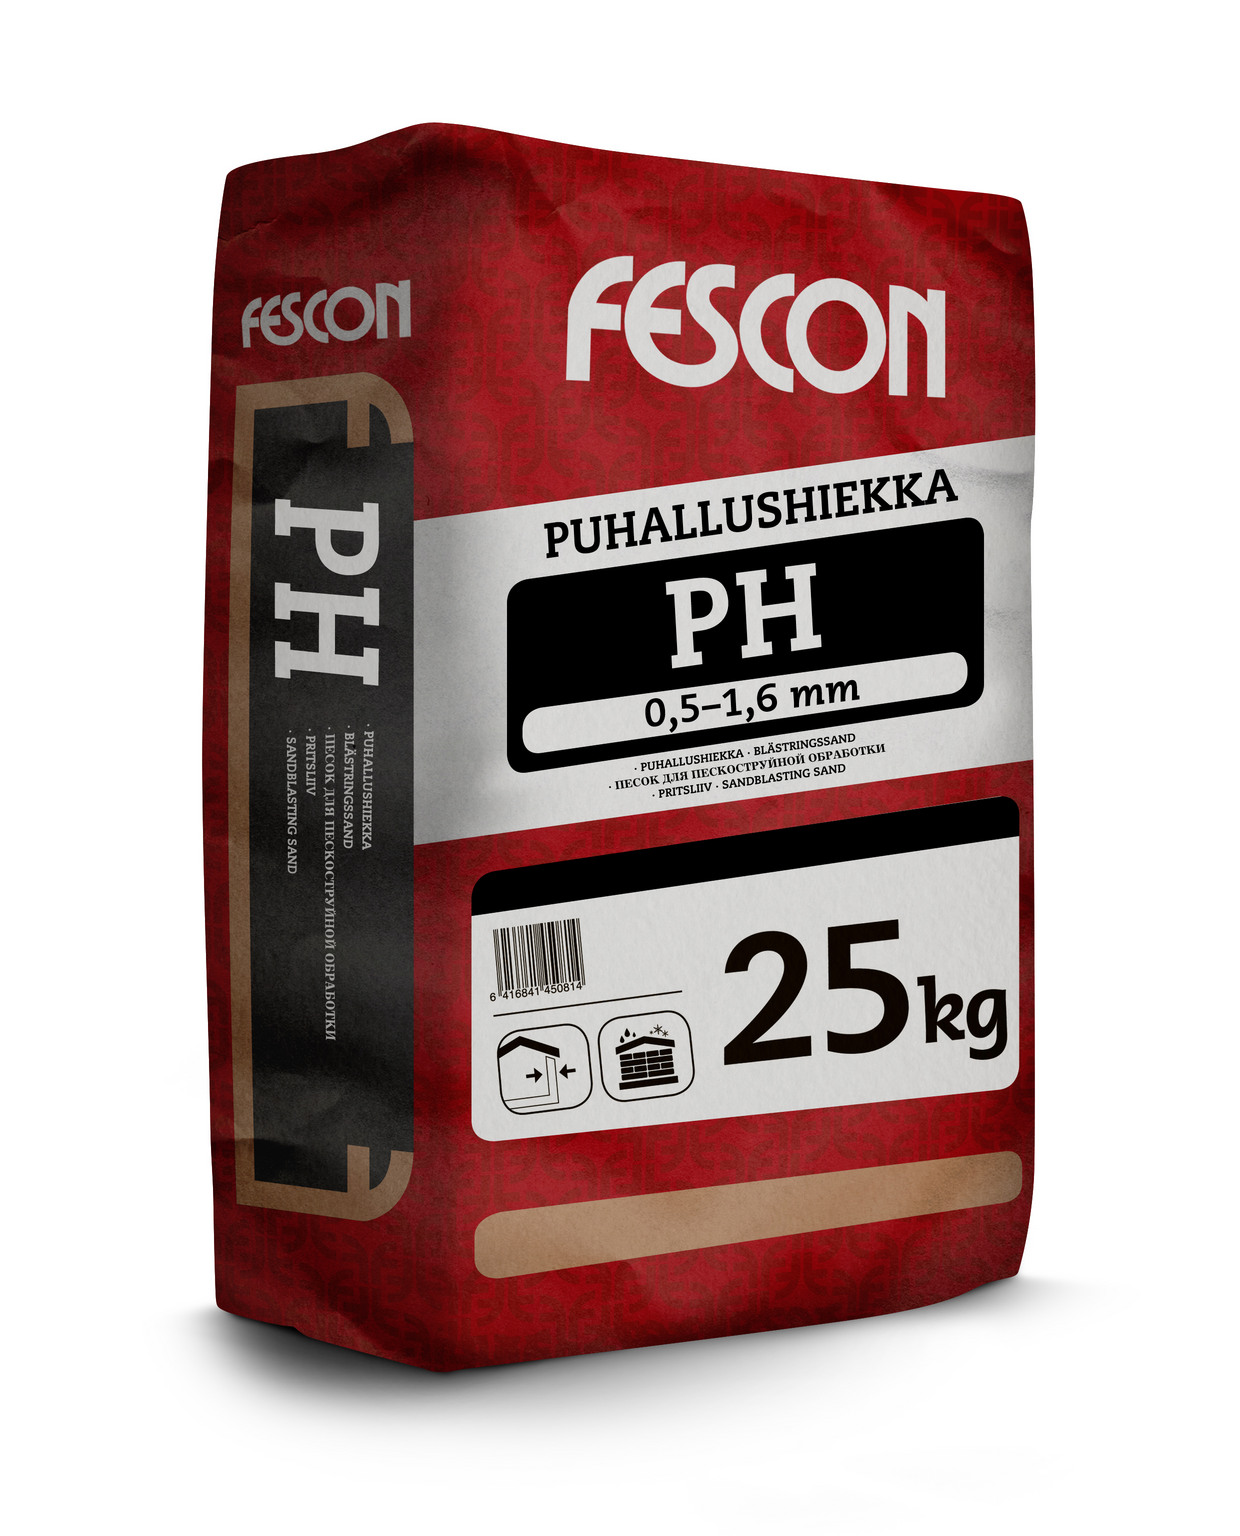 Puhallushiekka Fescon PH 0,5-1,6 mm 25 kg